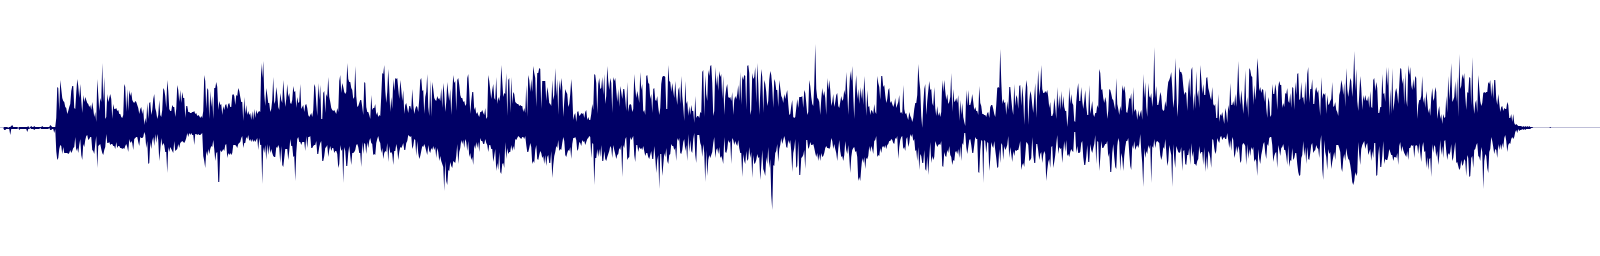 waveform of track #99013